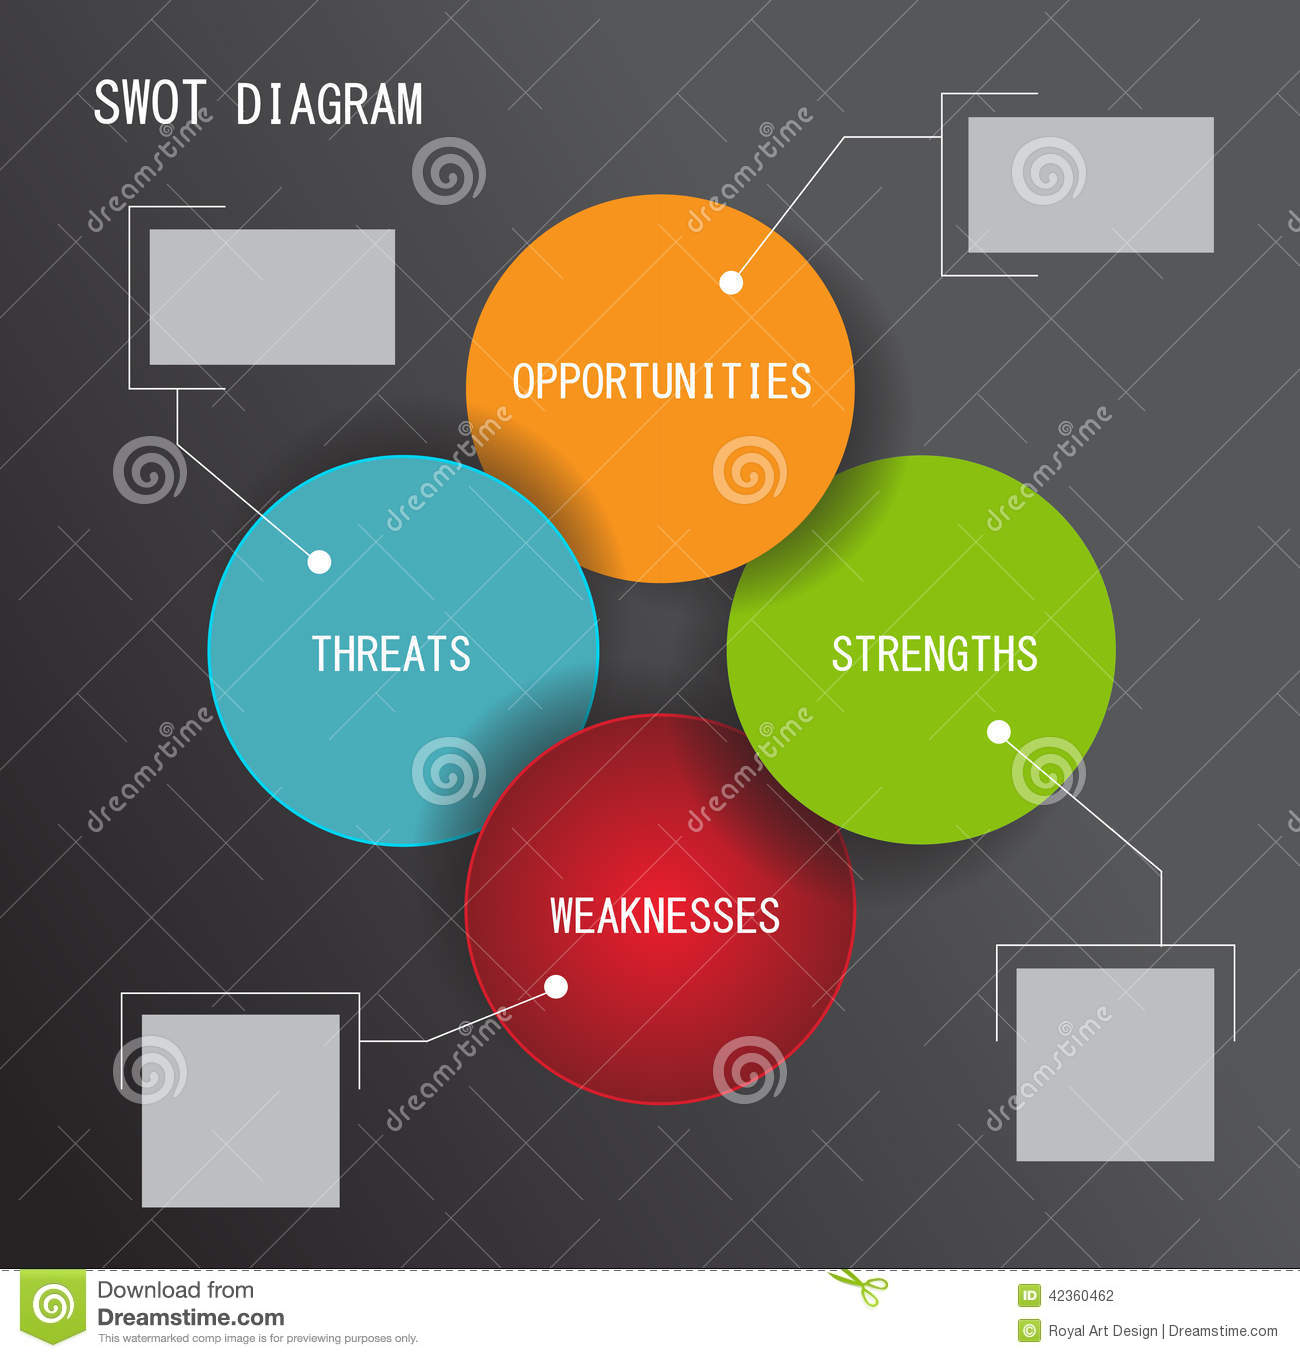 swot and strategy week 4z upload Weaknesses in a business plan indicate one of two things [threats swot analysis strategy] how to identify strengths & weaknesses in a business plan small.